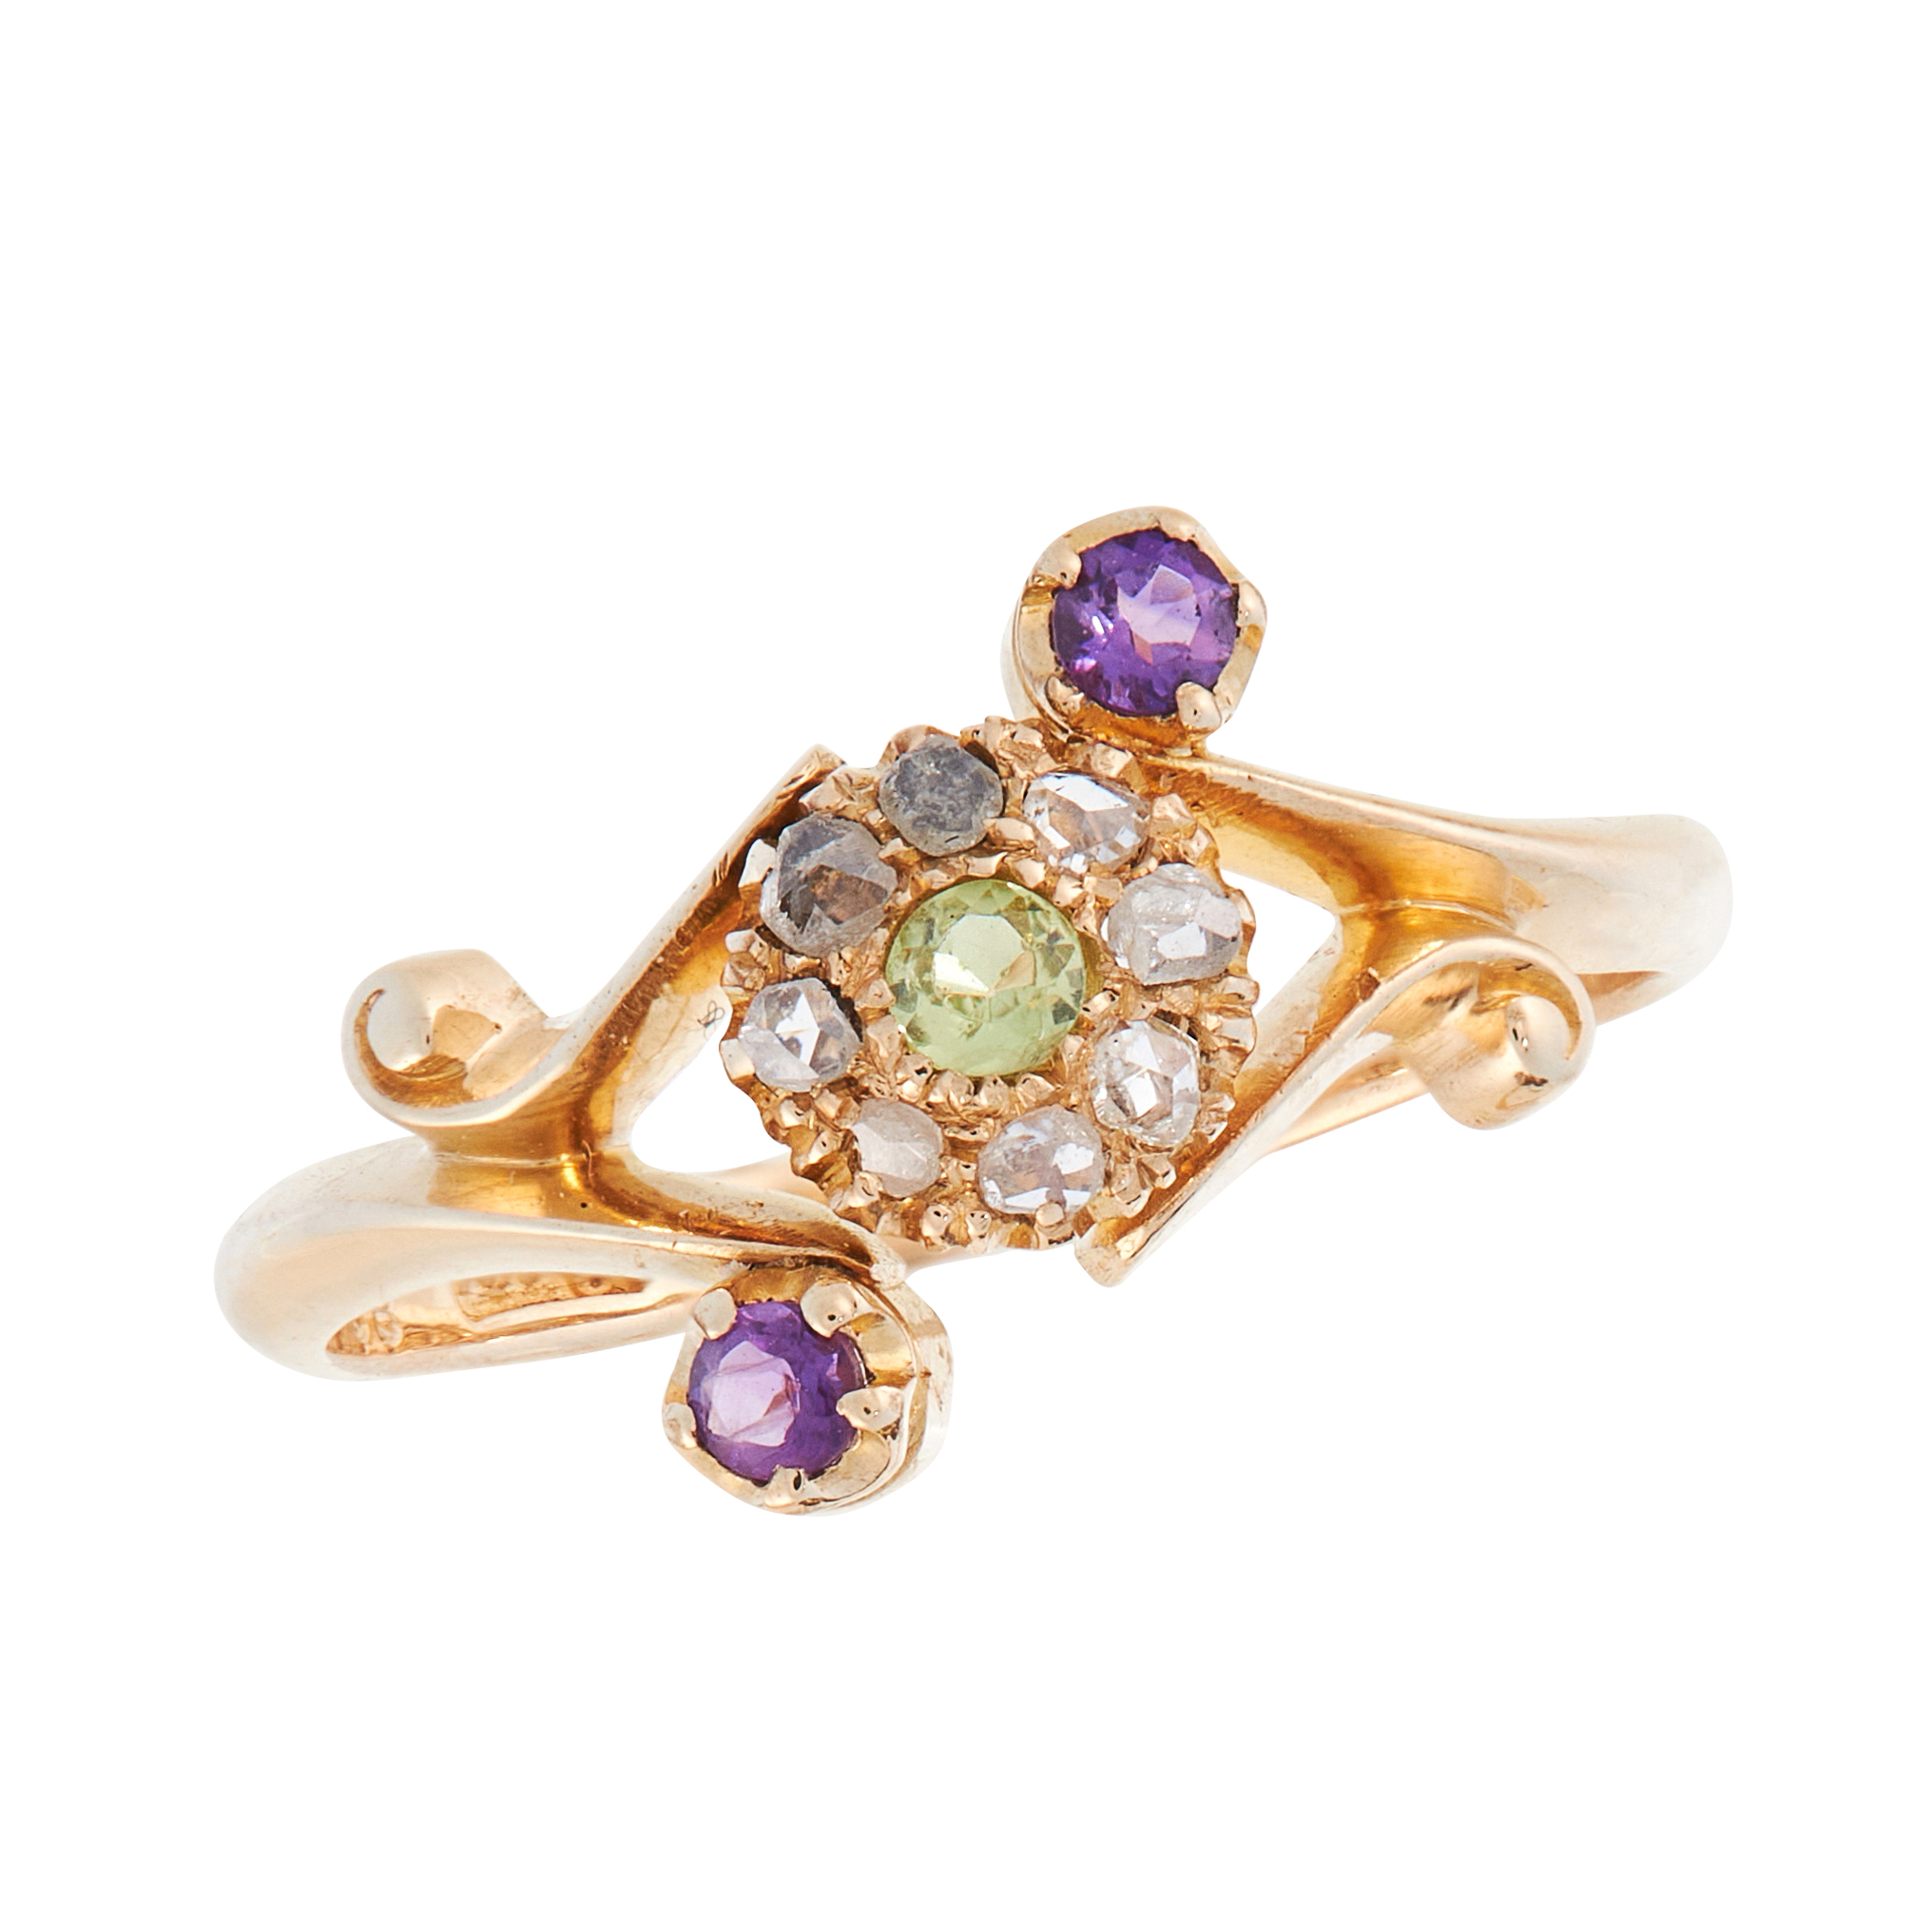 AN ANTIQUE PERIDOT, AMETHYST AND DIAMOND SUFFRAGETTE DRESS RING, 1912 in 18ct yellow gold, of